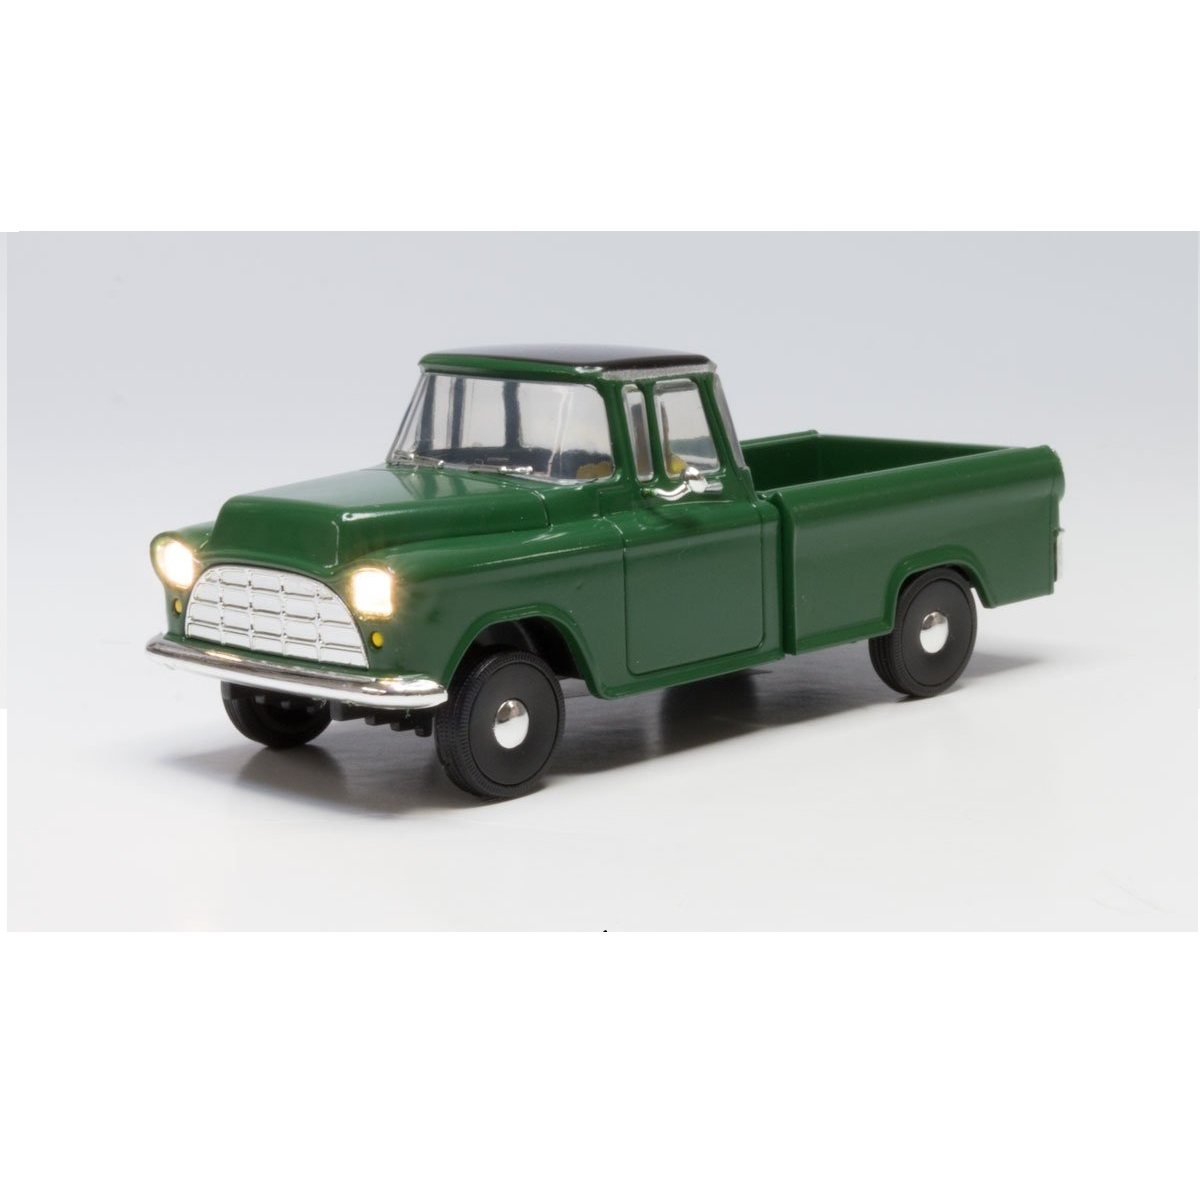 N Scale Green Pickup